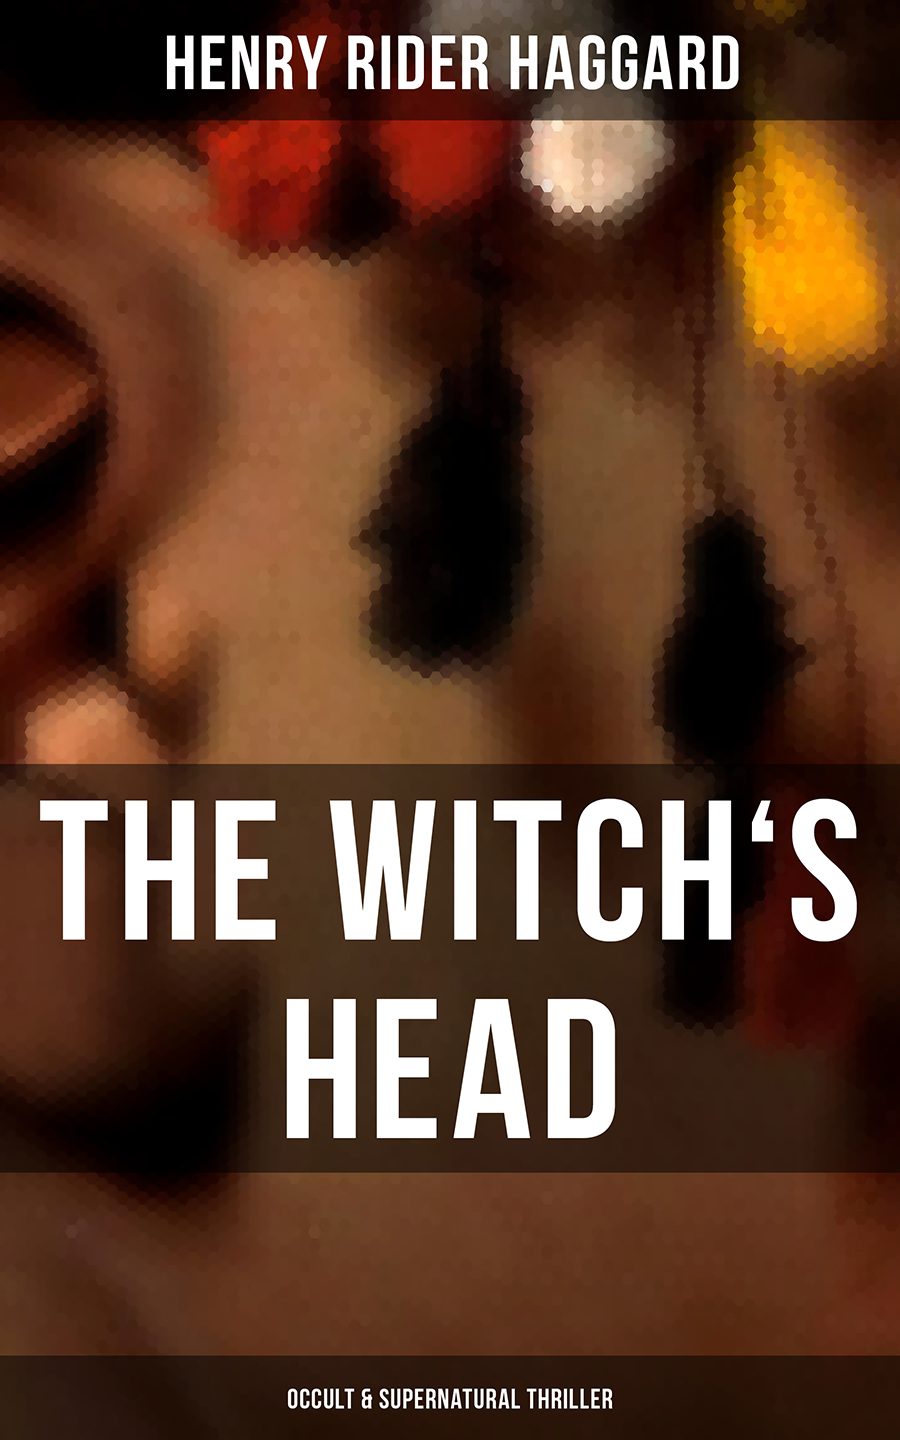 Henry Rider Haggard THE WITCH'S HEAD (Occult & Supernatural Thriller) haggard henry rider swallow